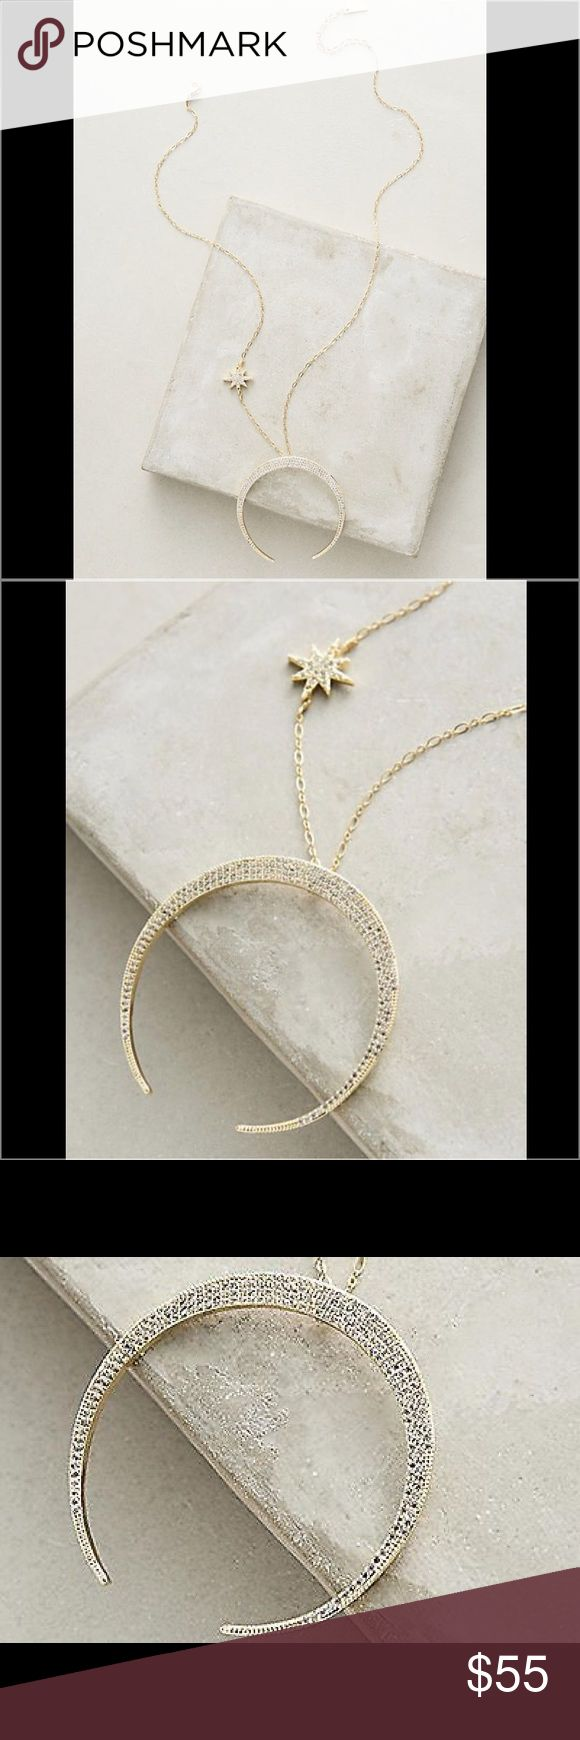 """Anthropologie Moon Star Necklace Lunar Arc Necklace By Serefina Plated zinc alloy, plated brass, rhinestones Lobster clasp 18""""L with 2"""" extender chain 2"""" pendant Anthropologie Jewelry Necklaces"""